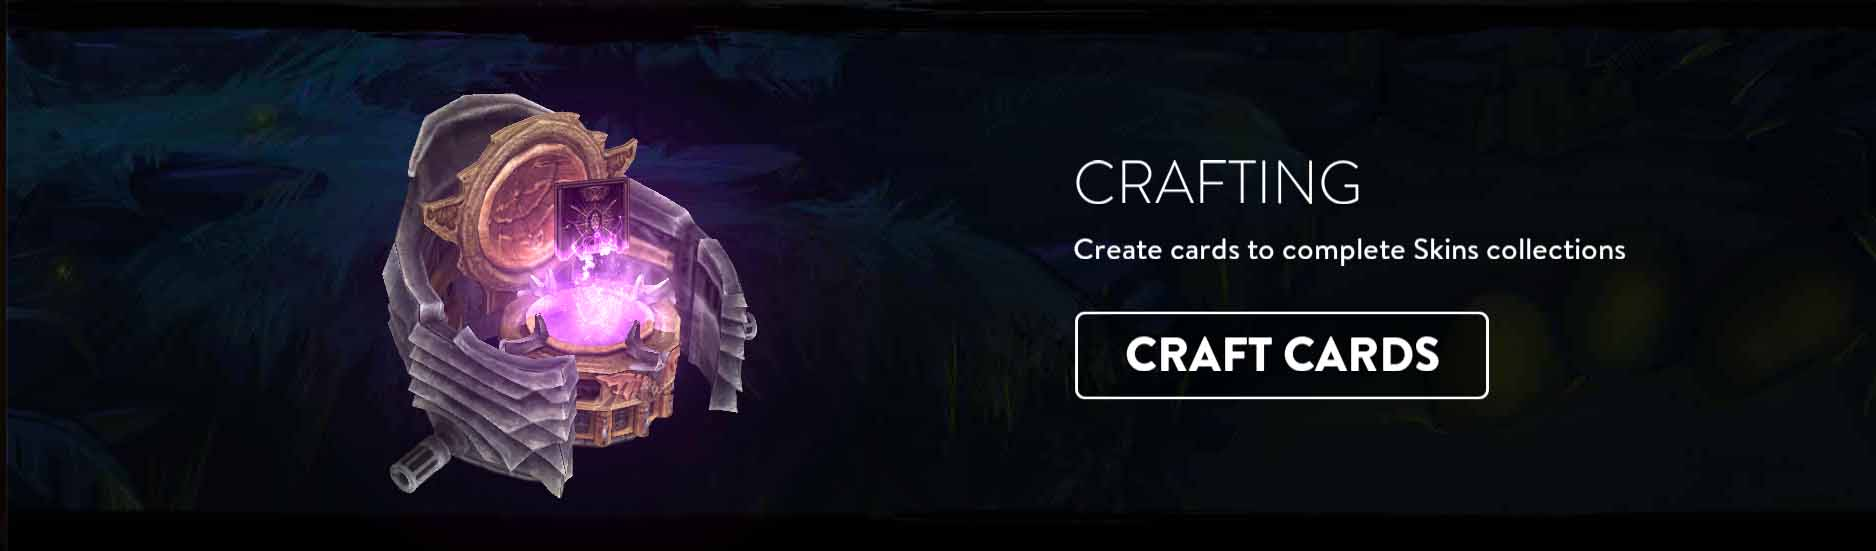 crafting card vainglory